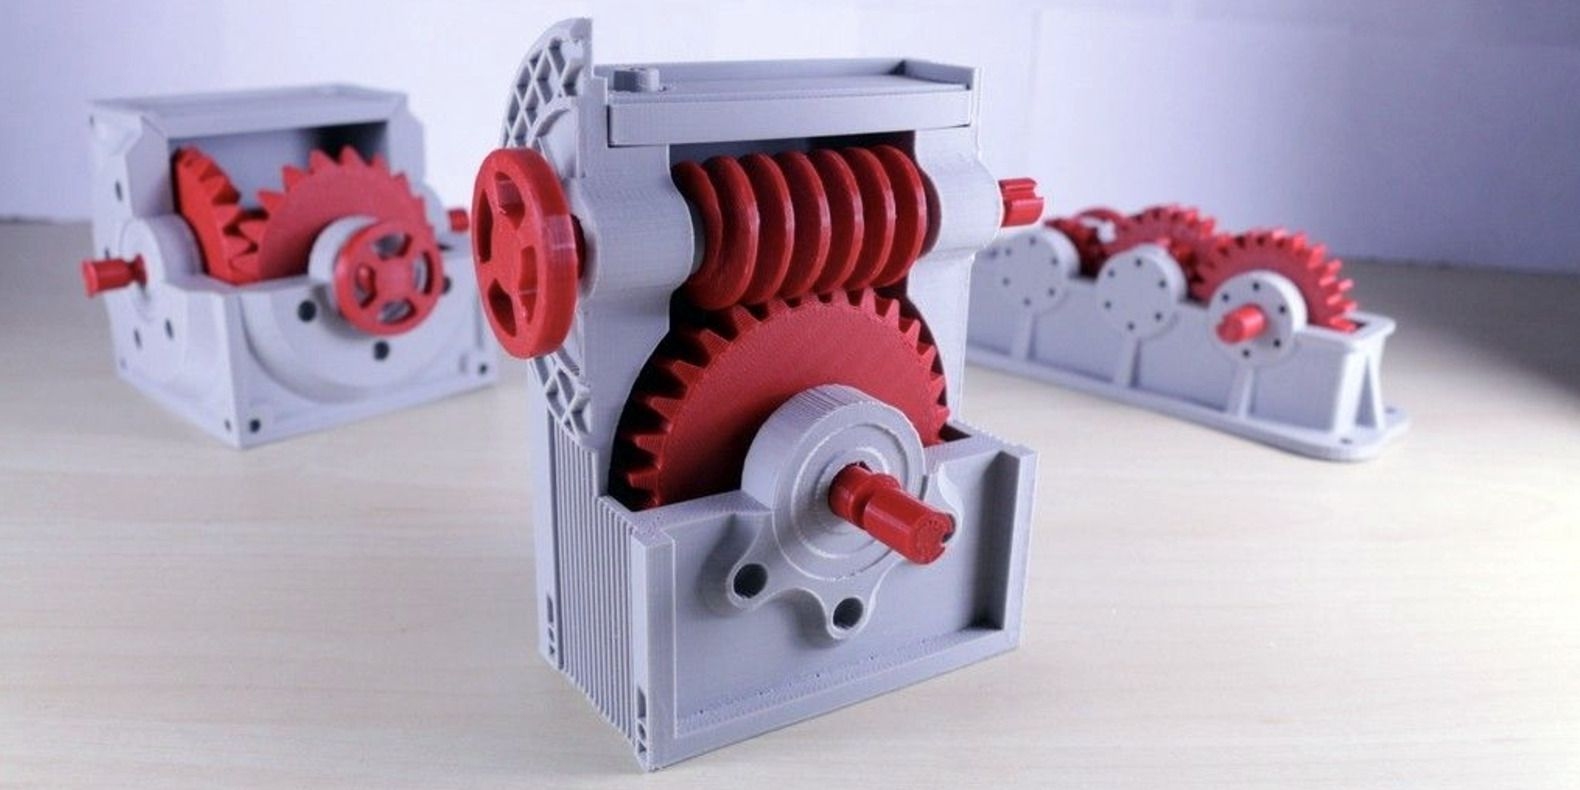 Find here a selection of the best 3D models of 3D printable mechanical files